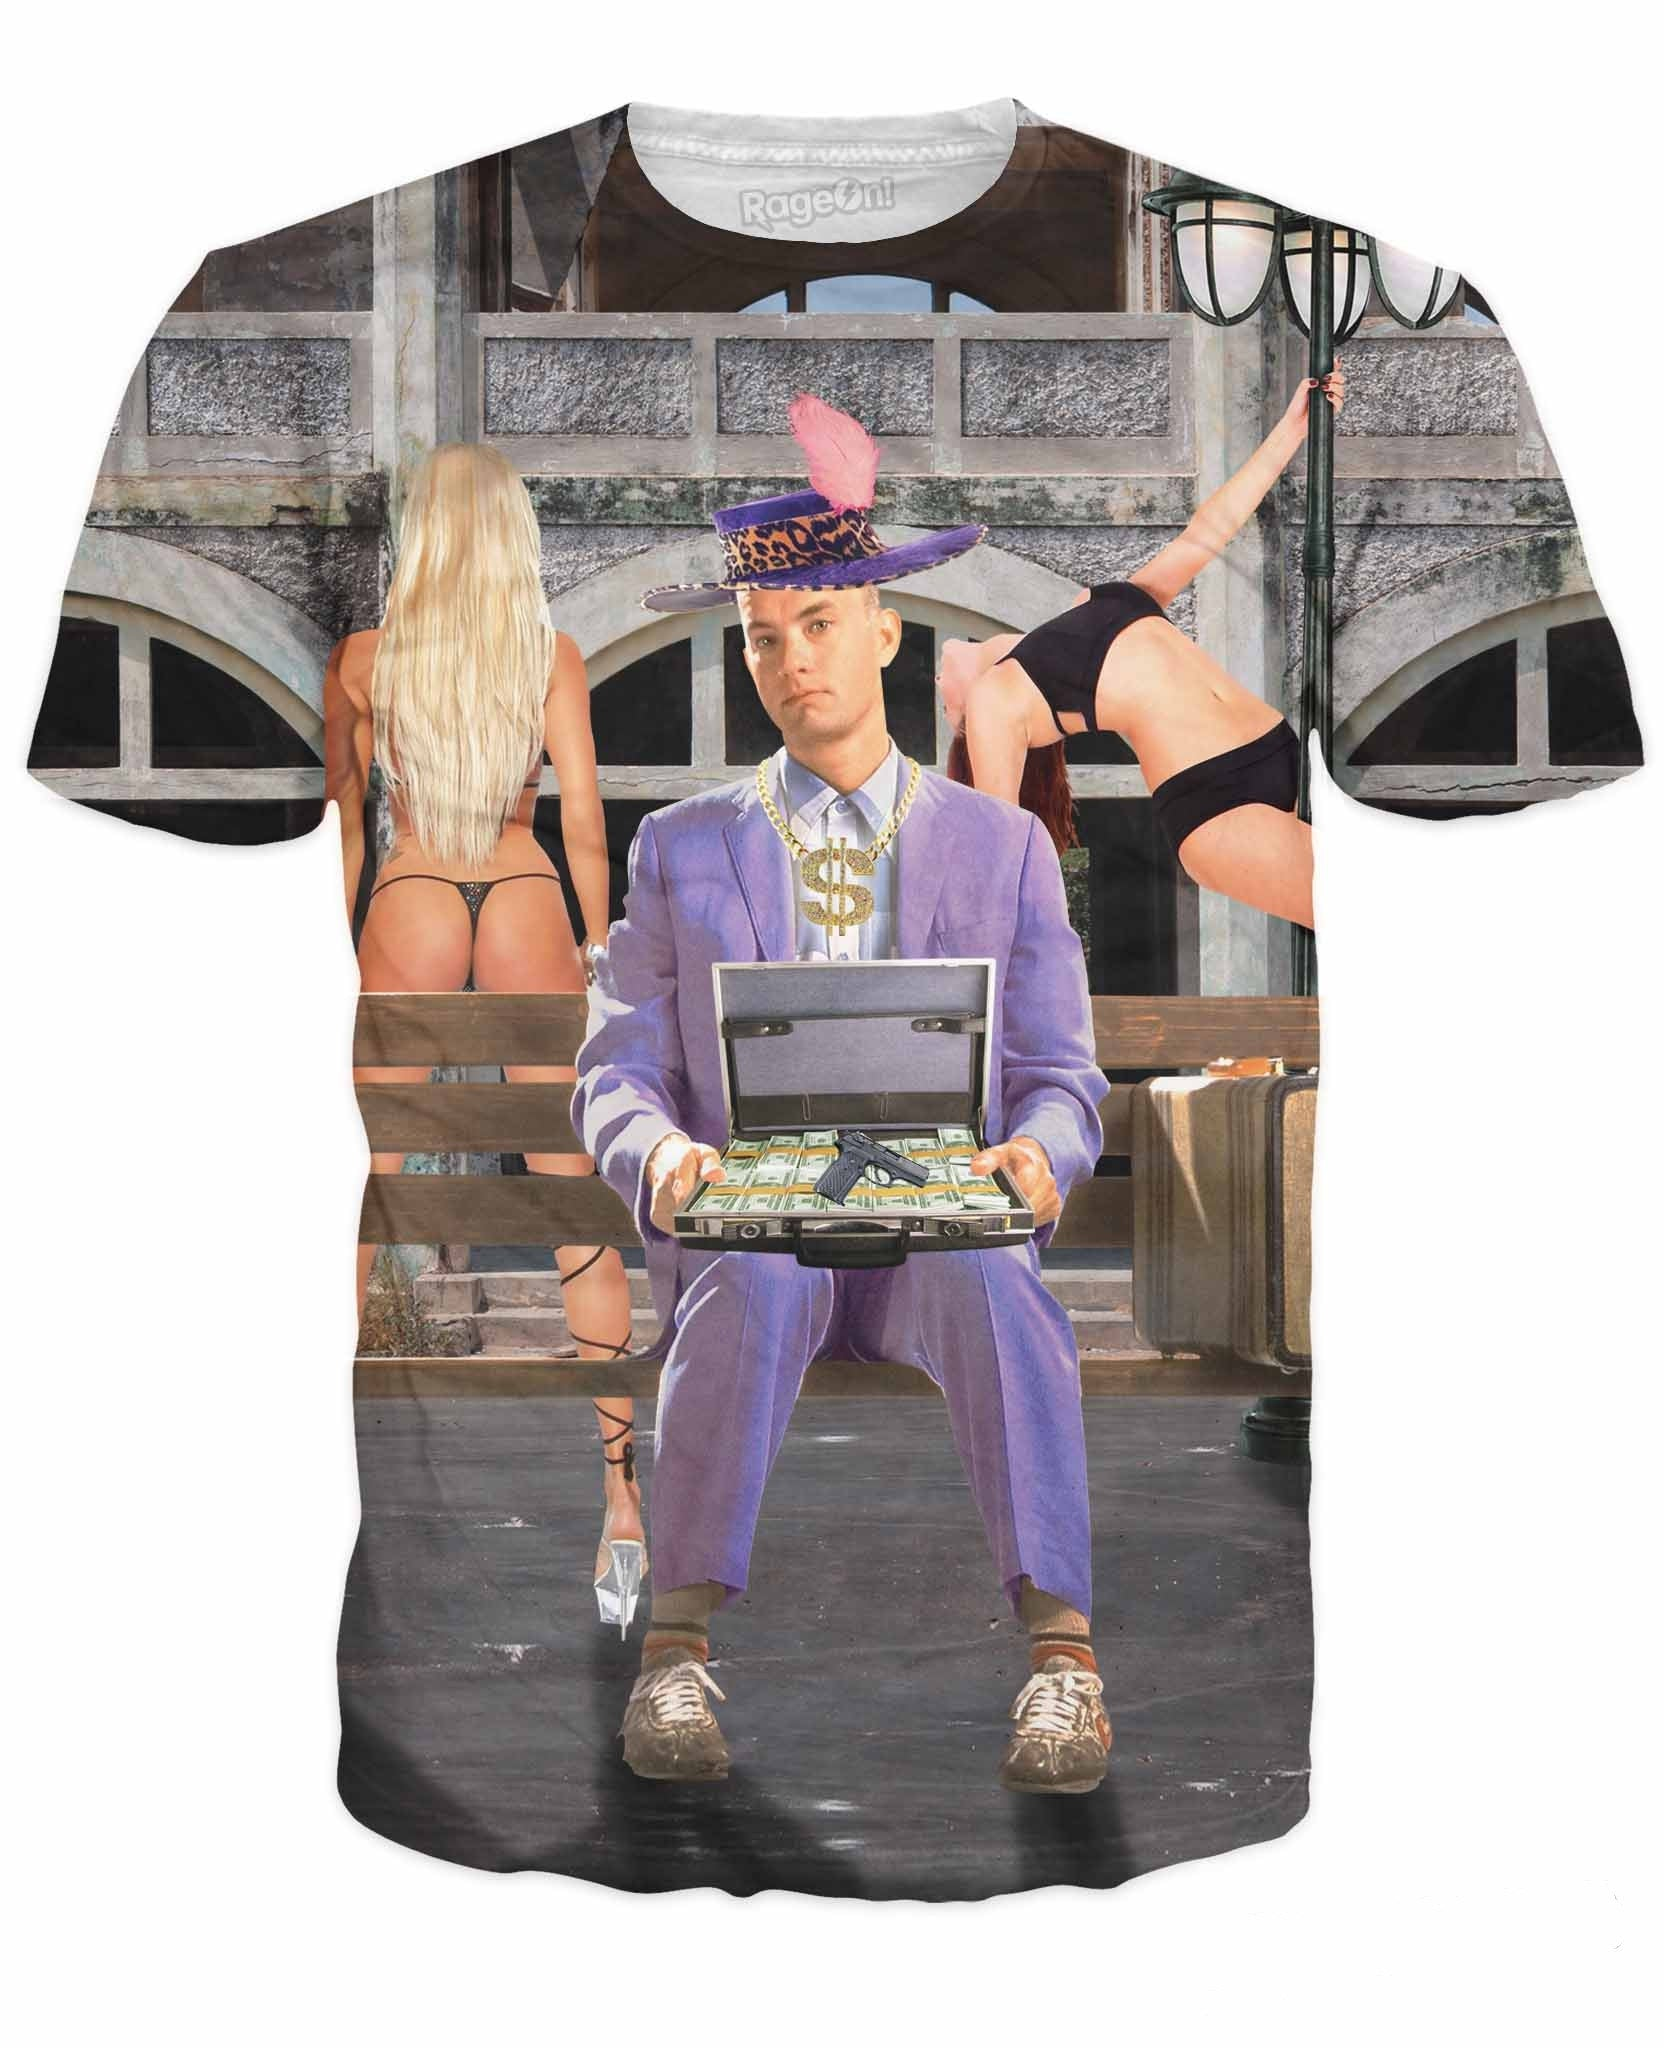 Mack Daddy Forrest TakeAllYoHoes Gump T-Shirt